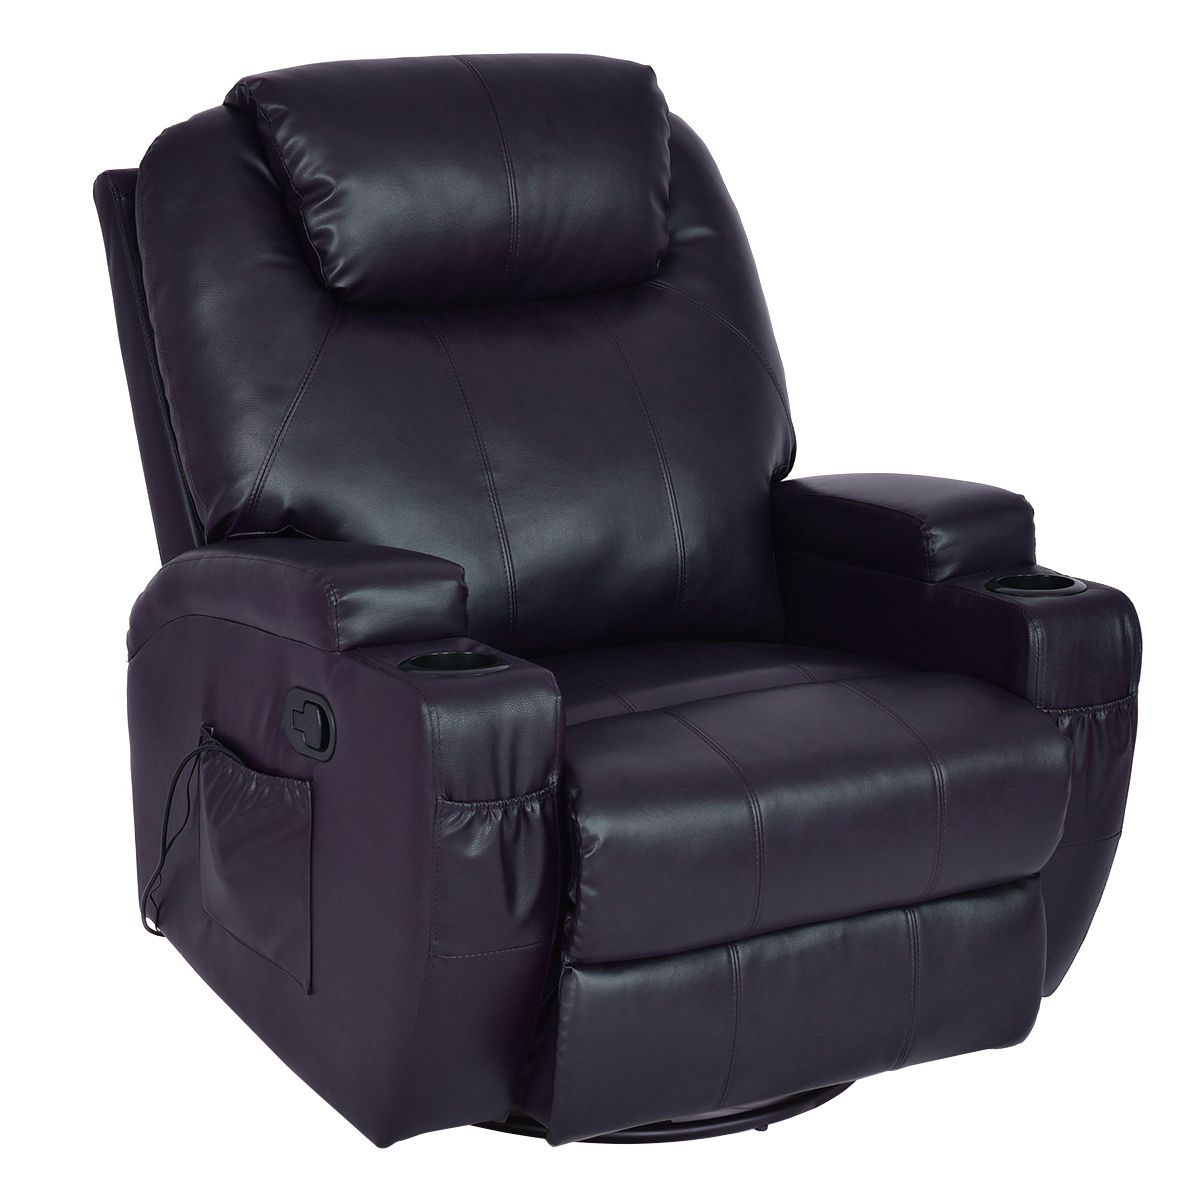 Costway Massage Sofa Chair Recliner Heated Rocking Swivel w/ Control and Cup Holder  sc 1 st  Walmart & Swivel Recliner Chairs islam-shia.org